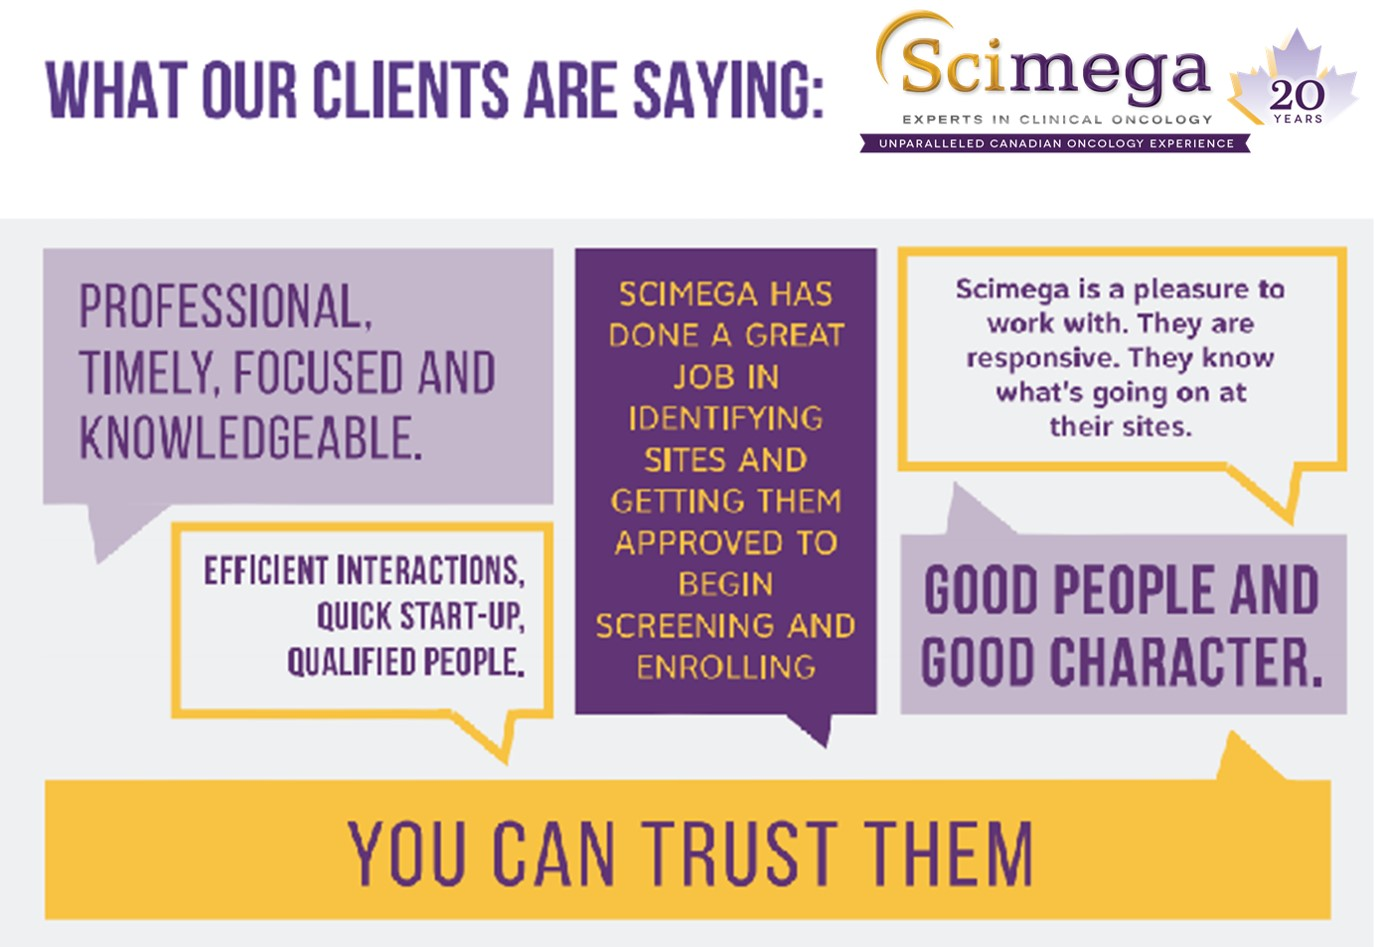 What Scimega clients are saying